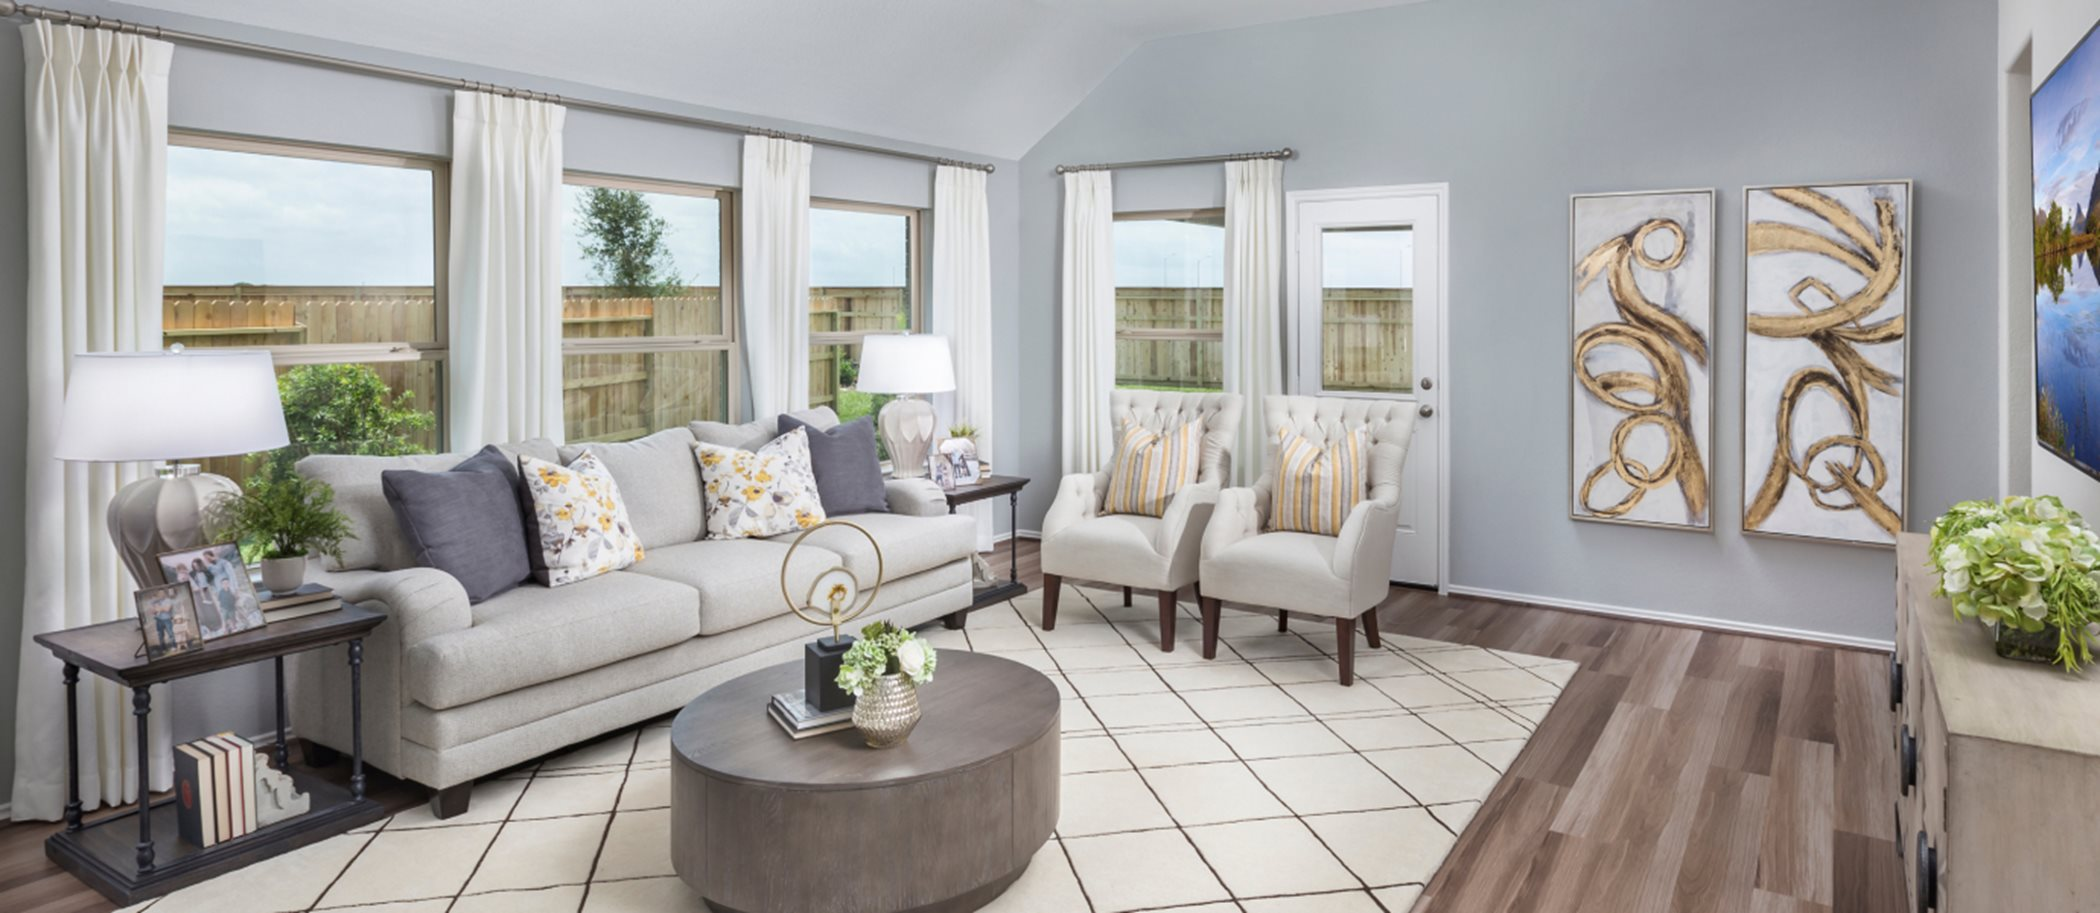 Dellrose Wildflower Collection Clover Living Room